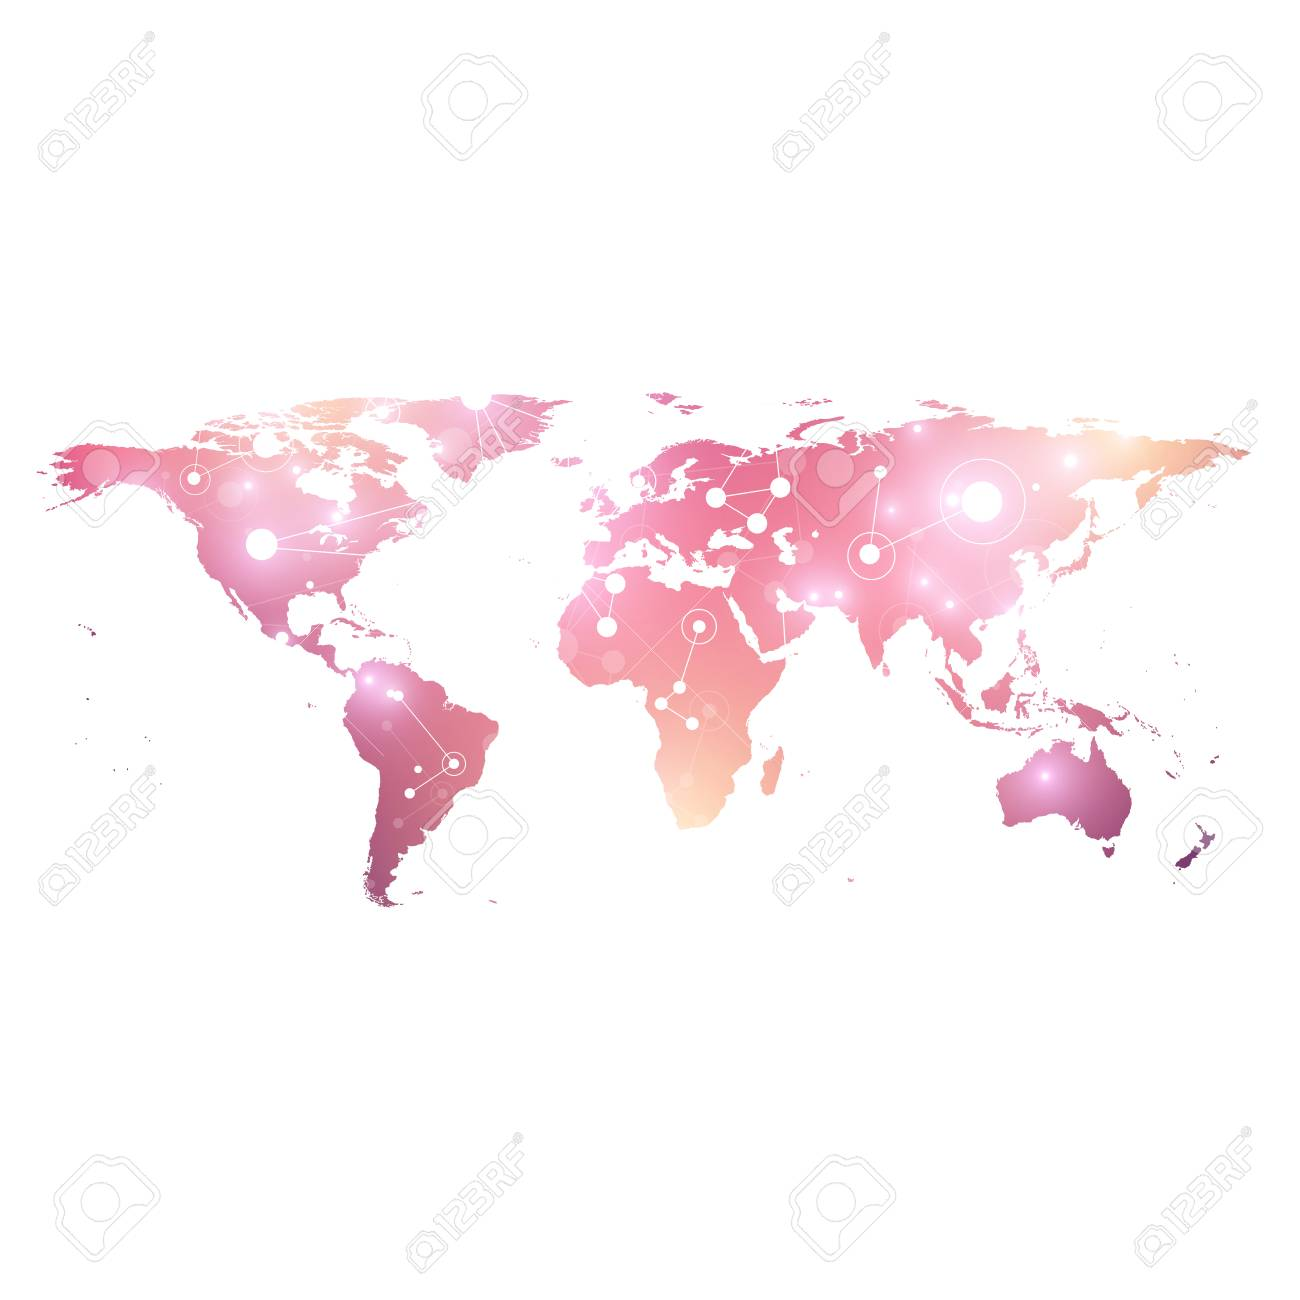 World map geometric graphic background communication big data world map geometric graphic background communication big data complex with compounds perspective graphic sciox Image collections